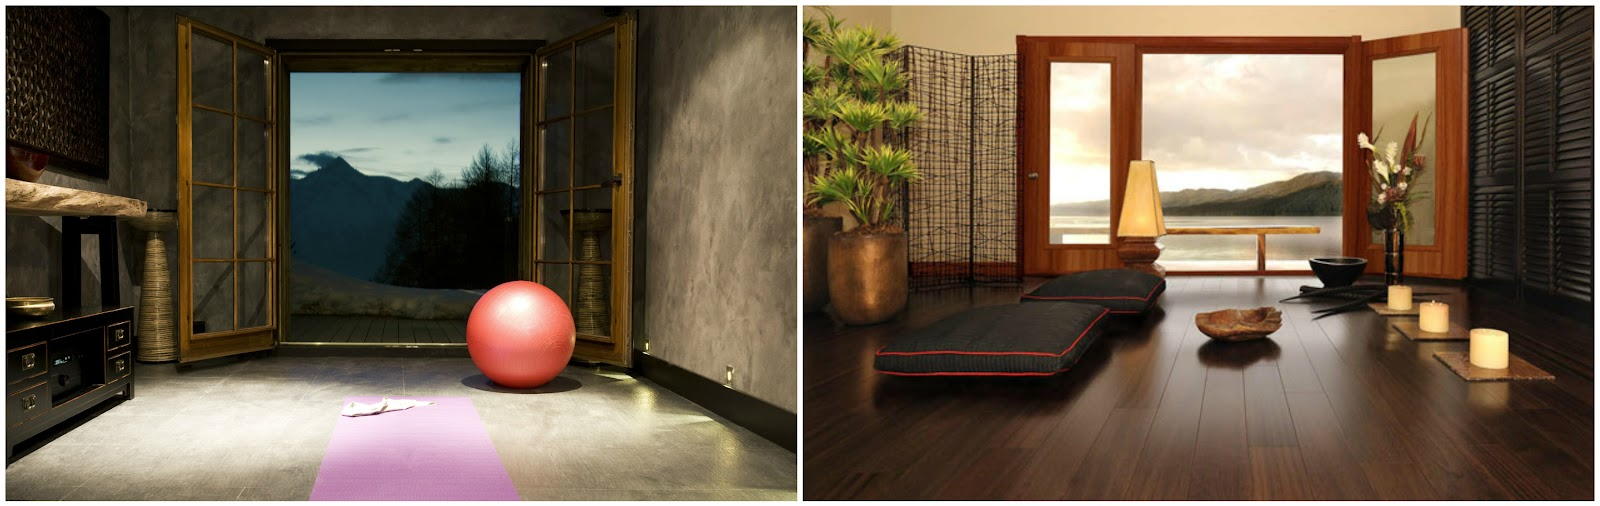 Creating An At Home Yoga And Meditation Sanctuary Home